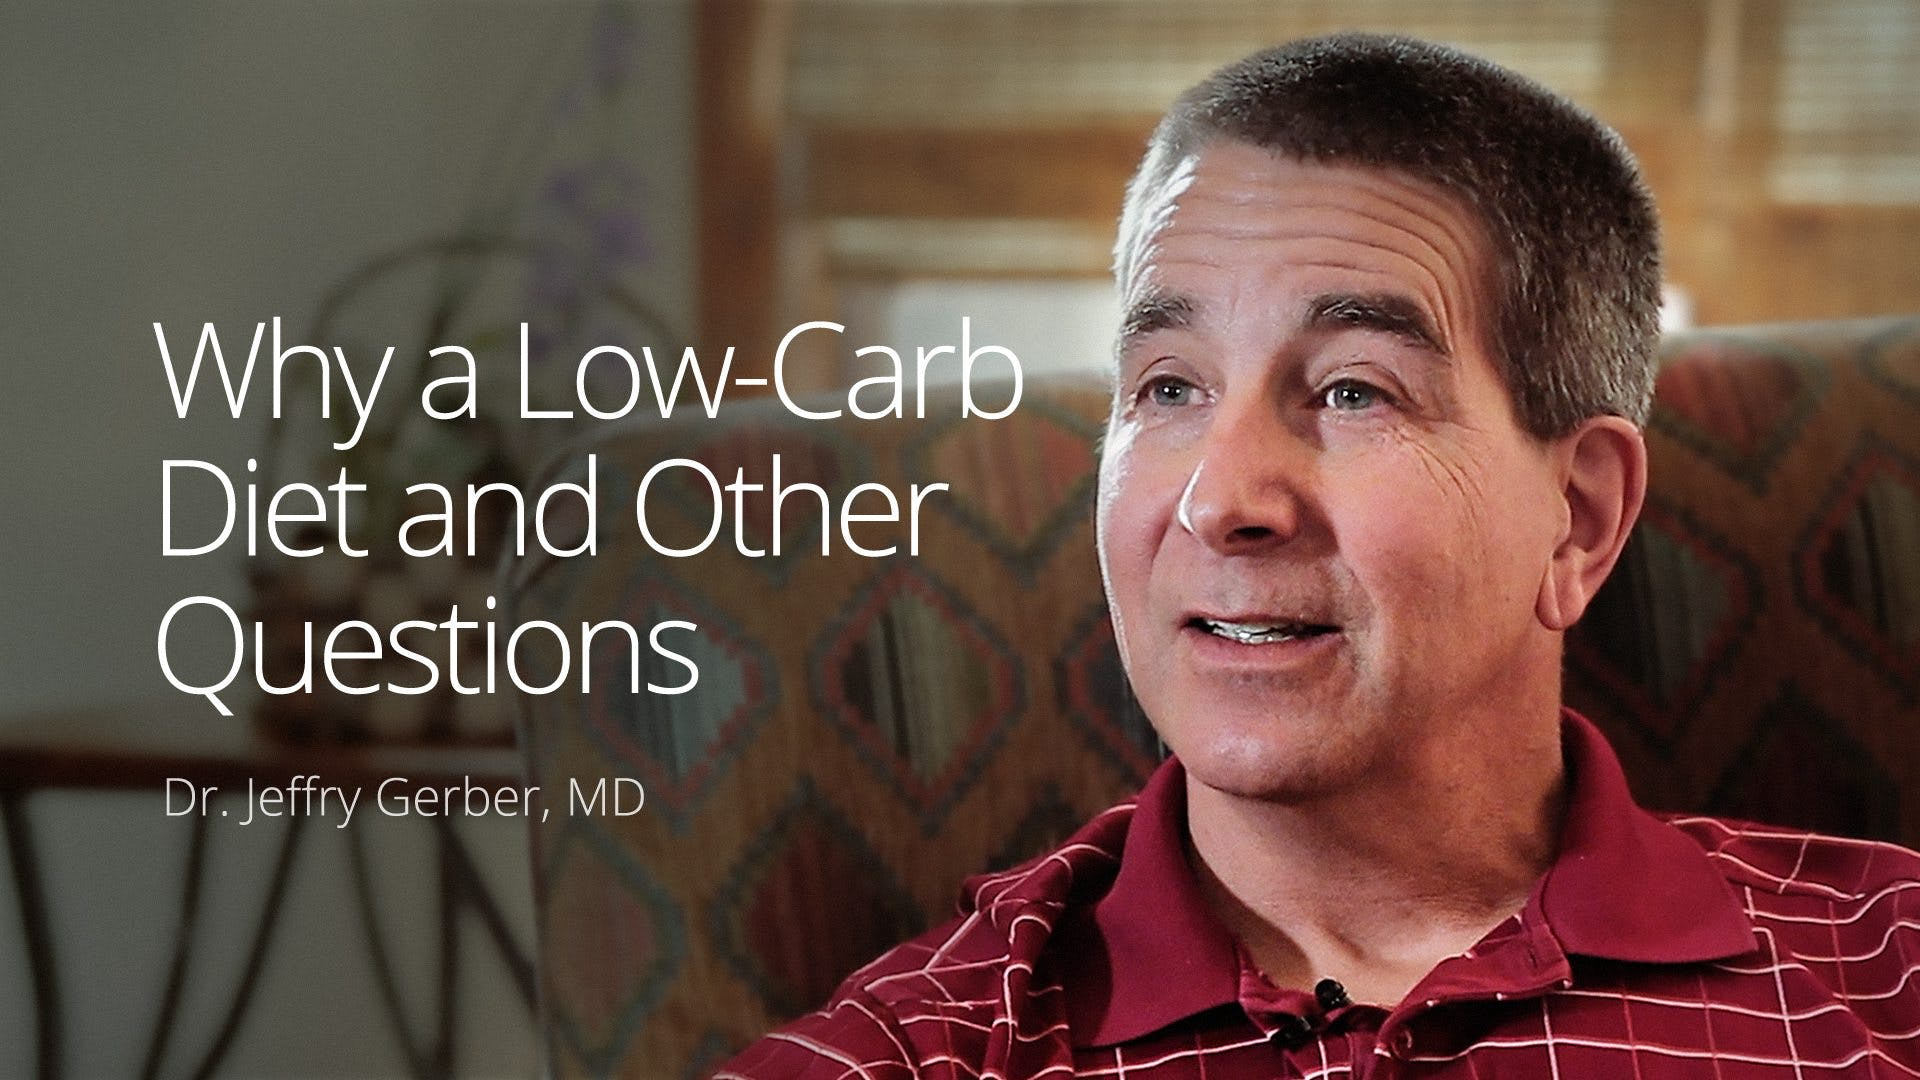 Why a low-carb diet and other questions